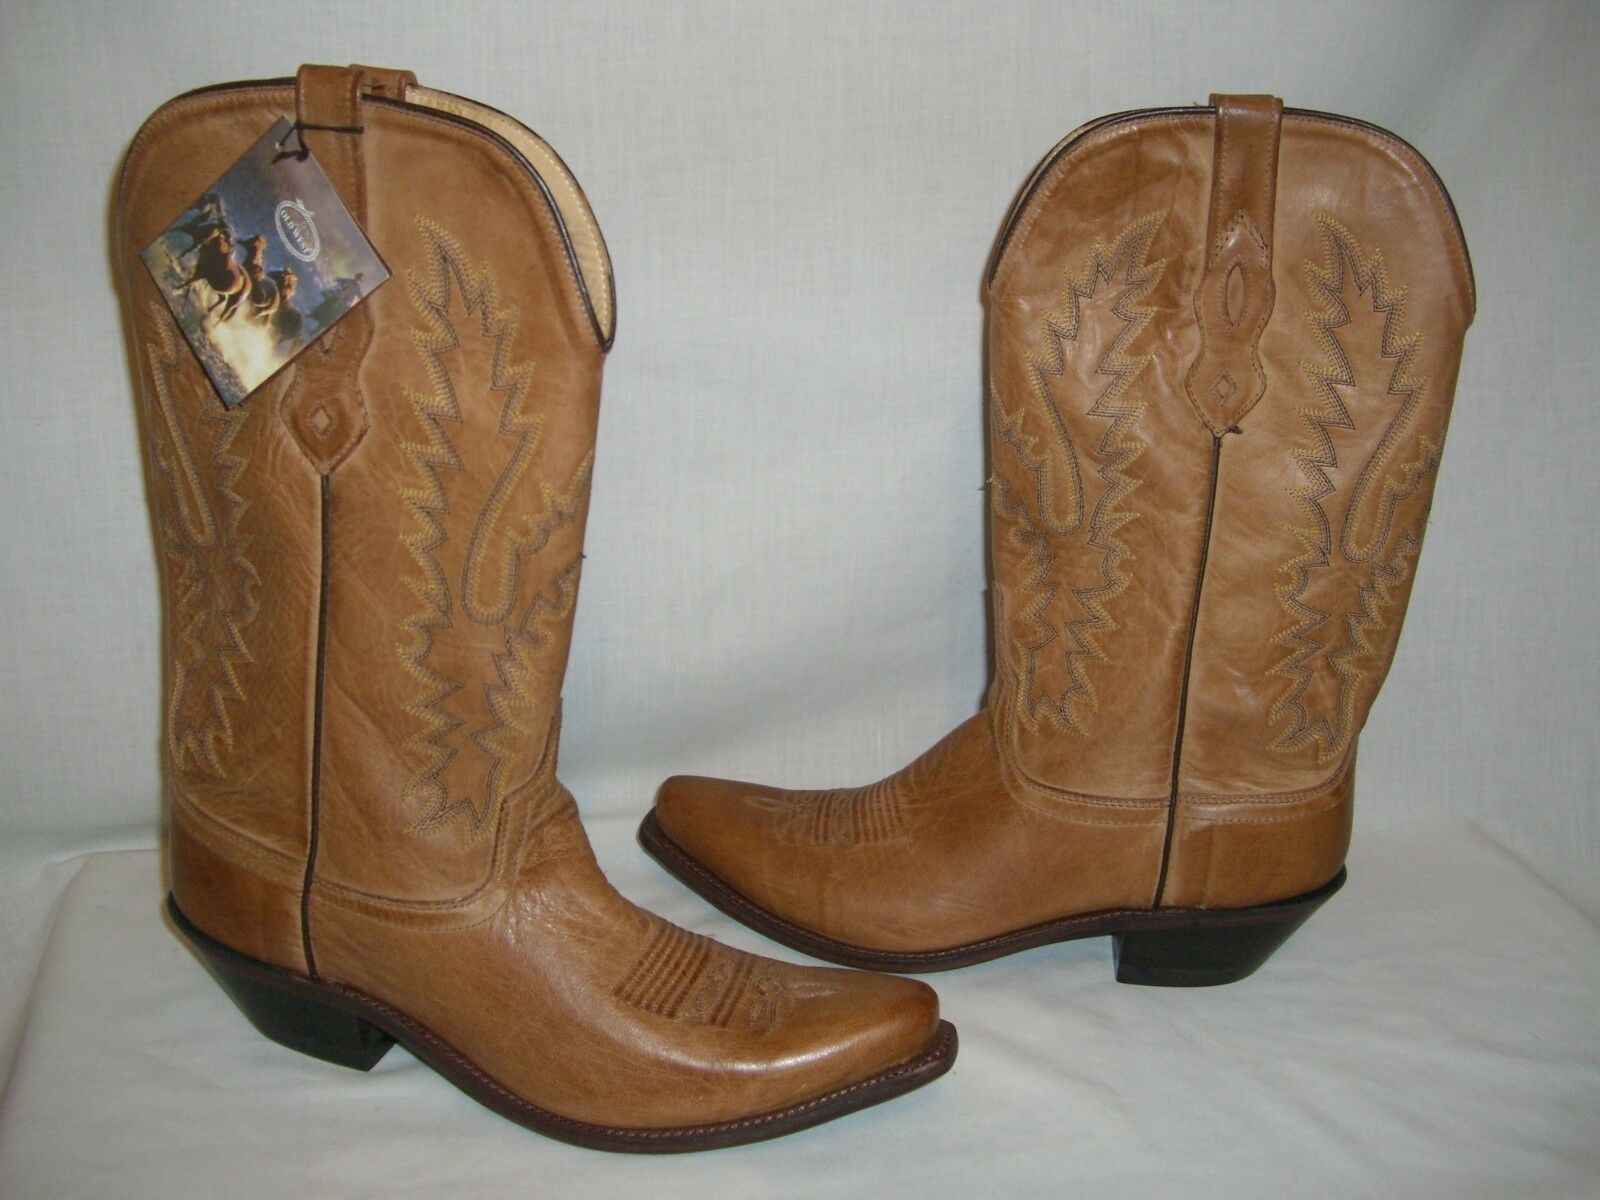 OLD WEST LF1529 Brown Leather Snip Toe Cowboy Western Boots - Wms 9.5 - NWT